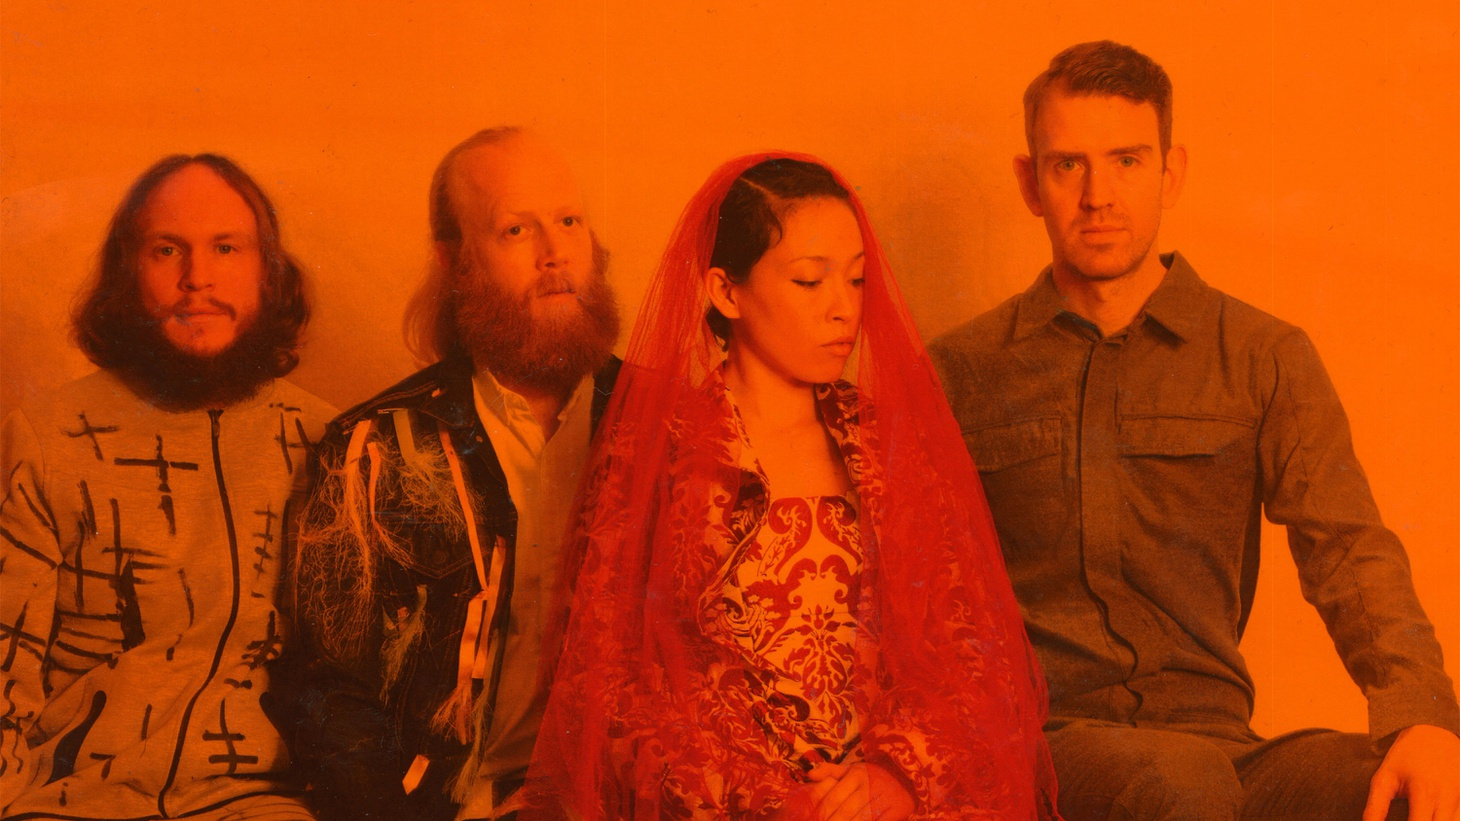 We've been anxiously awaiting a new album from Sweden's Little Dragon.